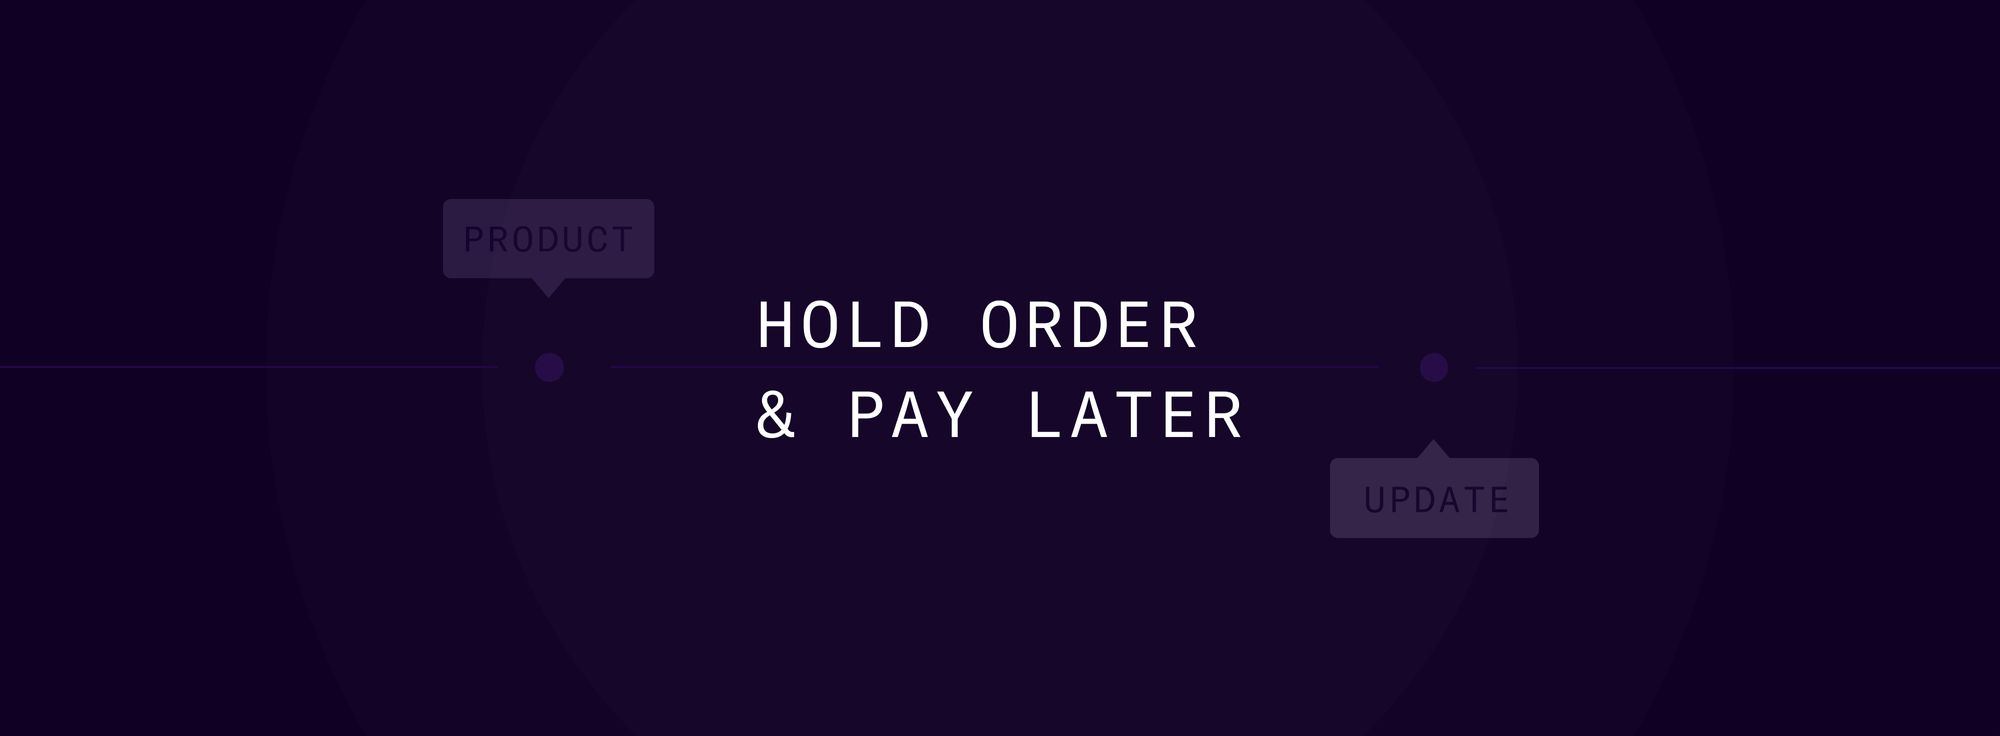 Duffel launches Hold Order & Pay Later